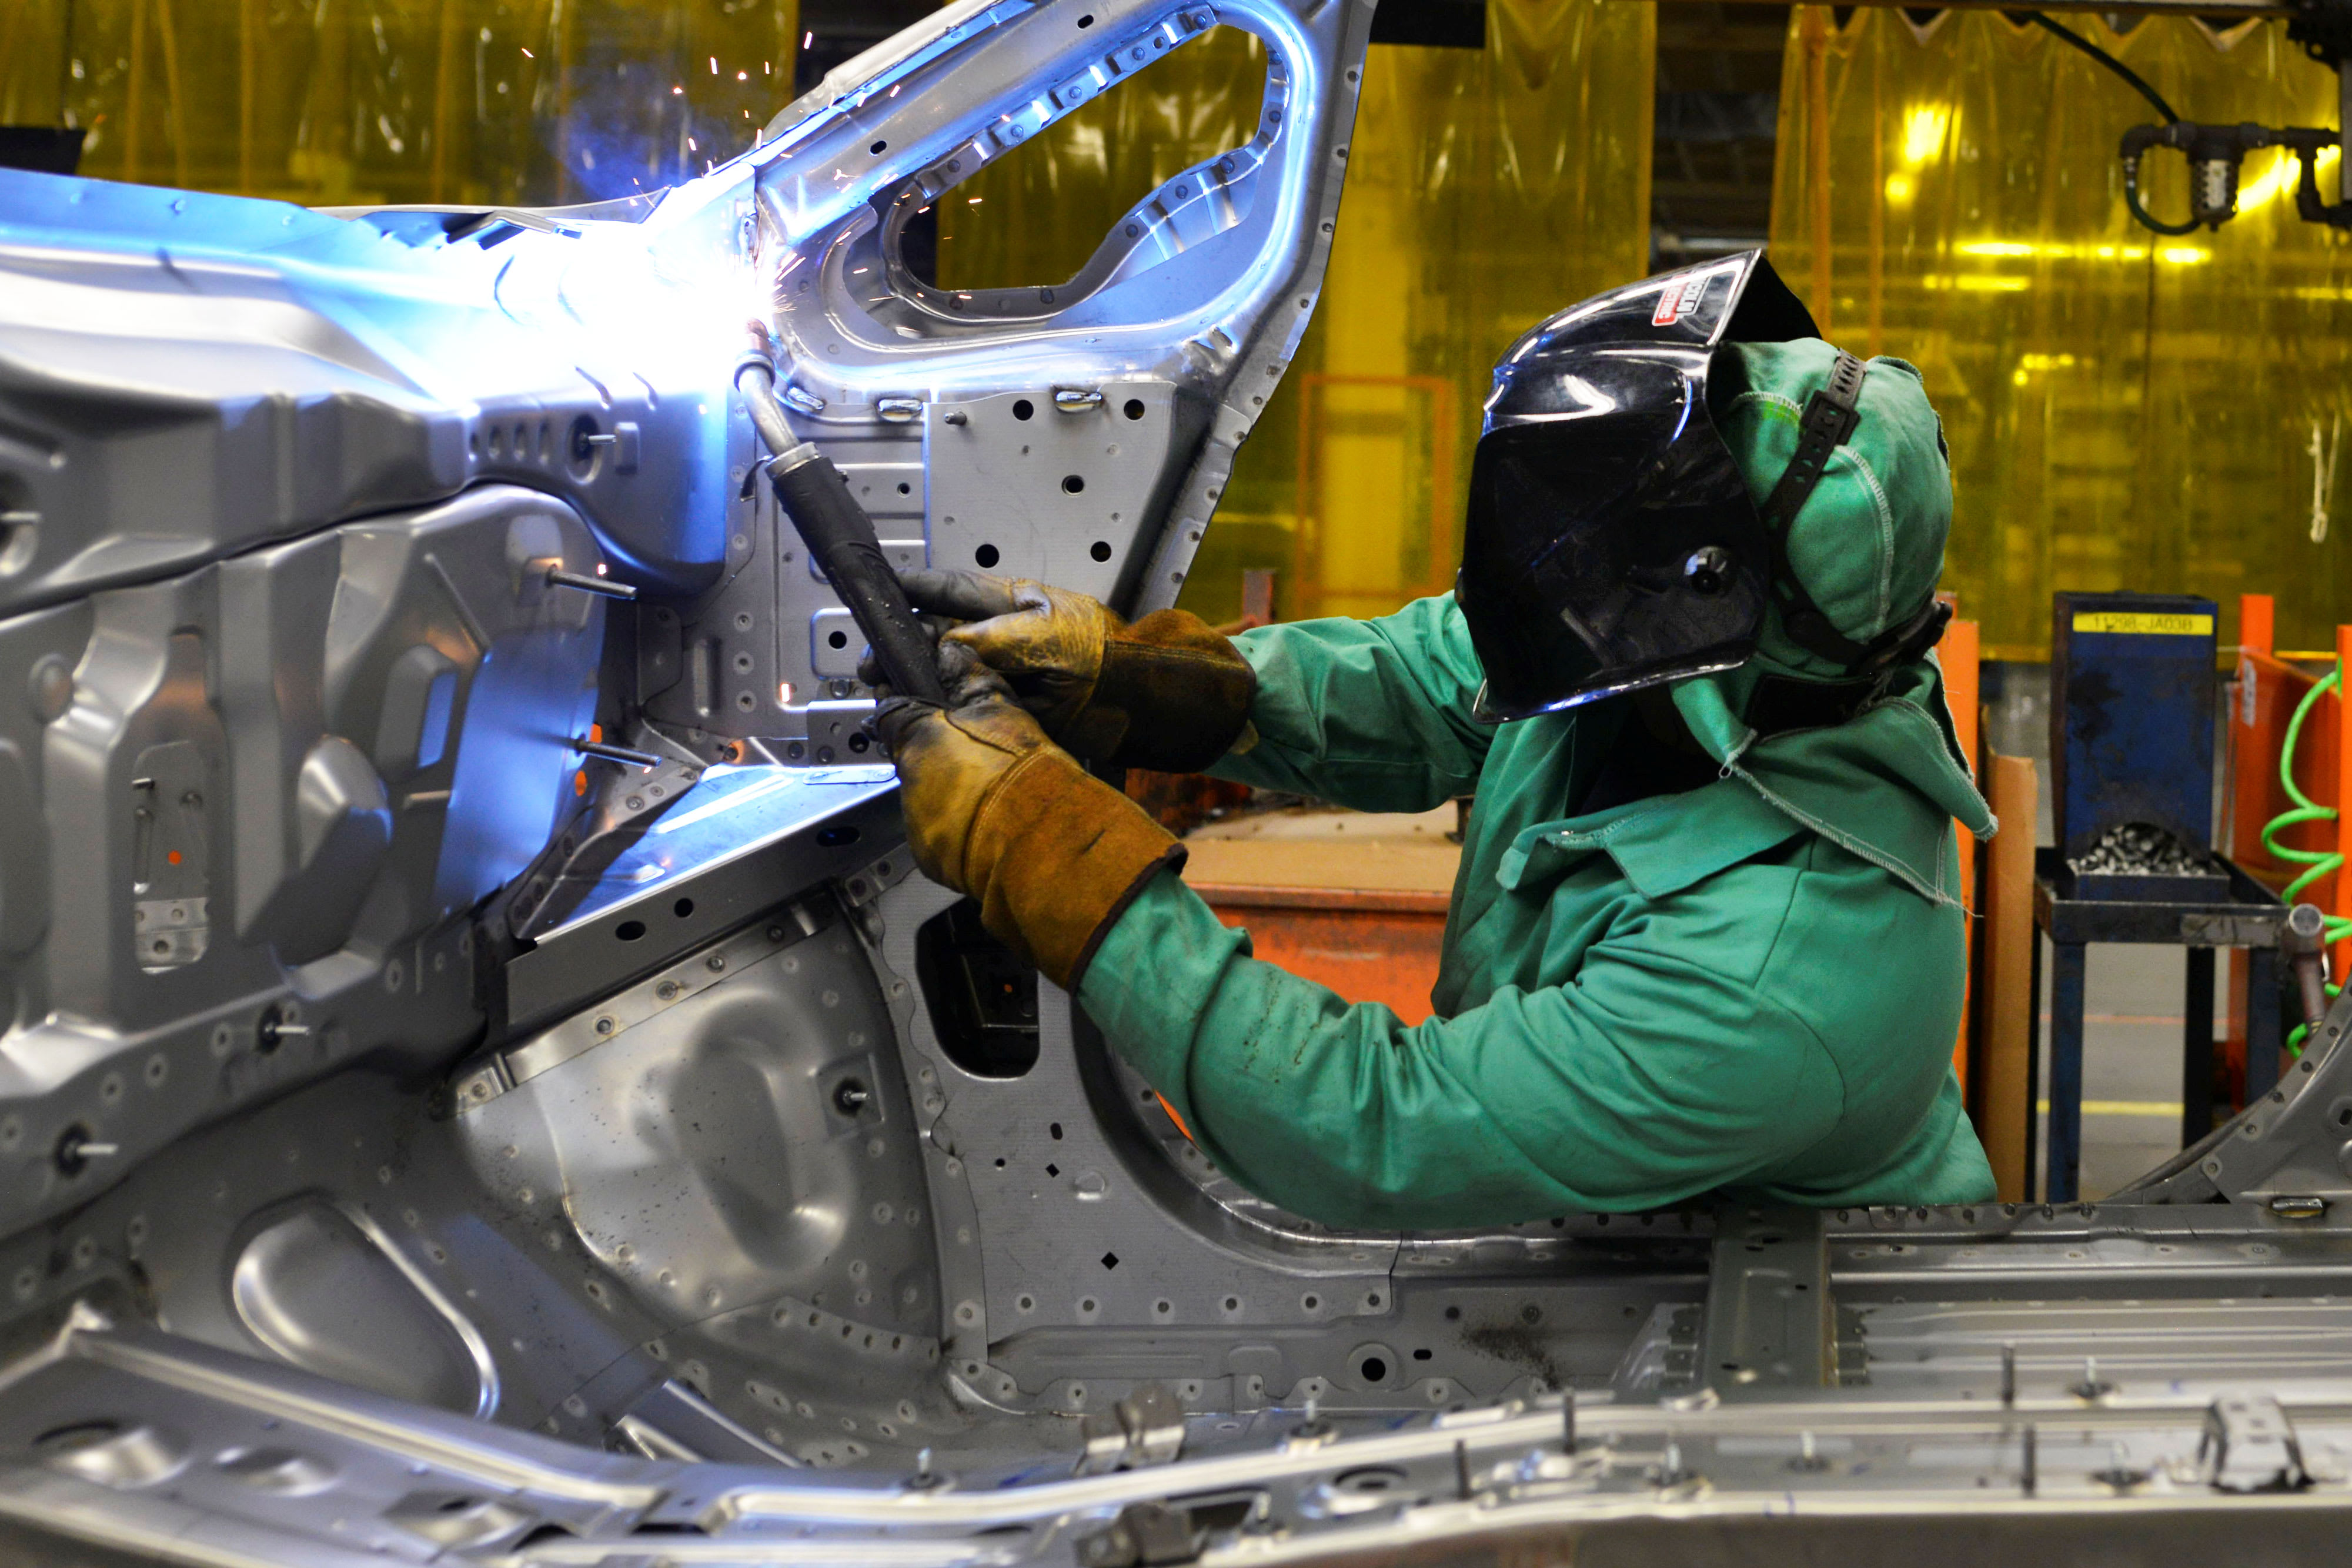 The manufacturing sector is contracting, according to ISM survey